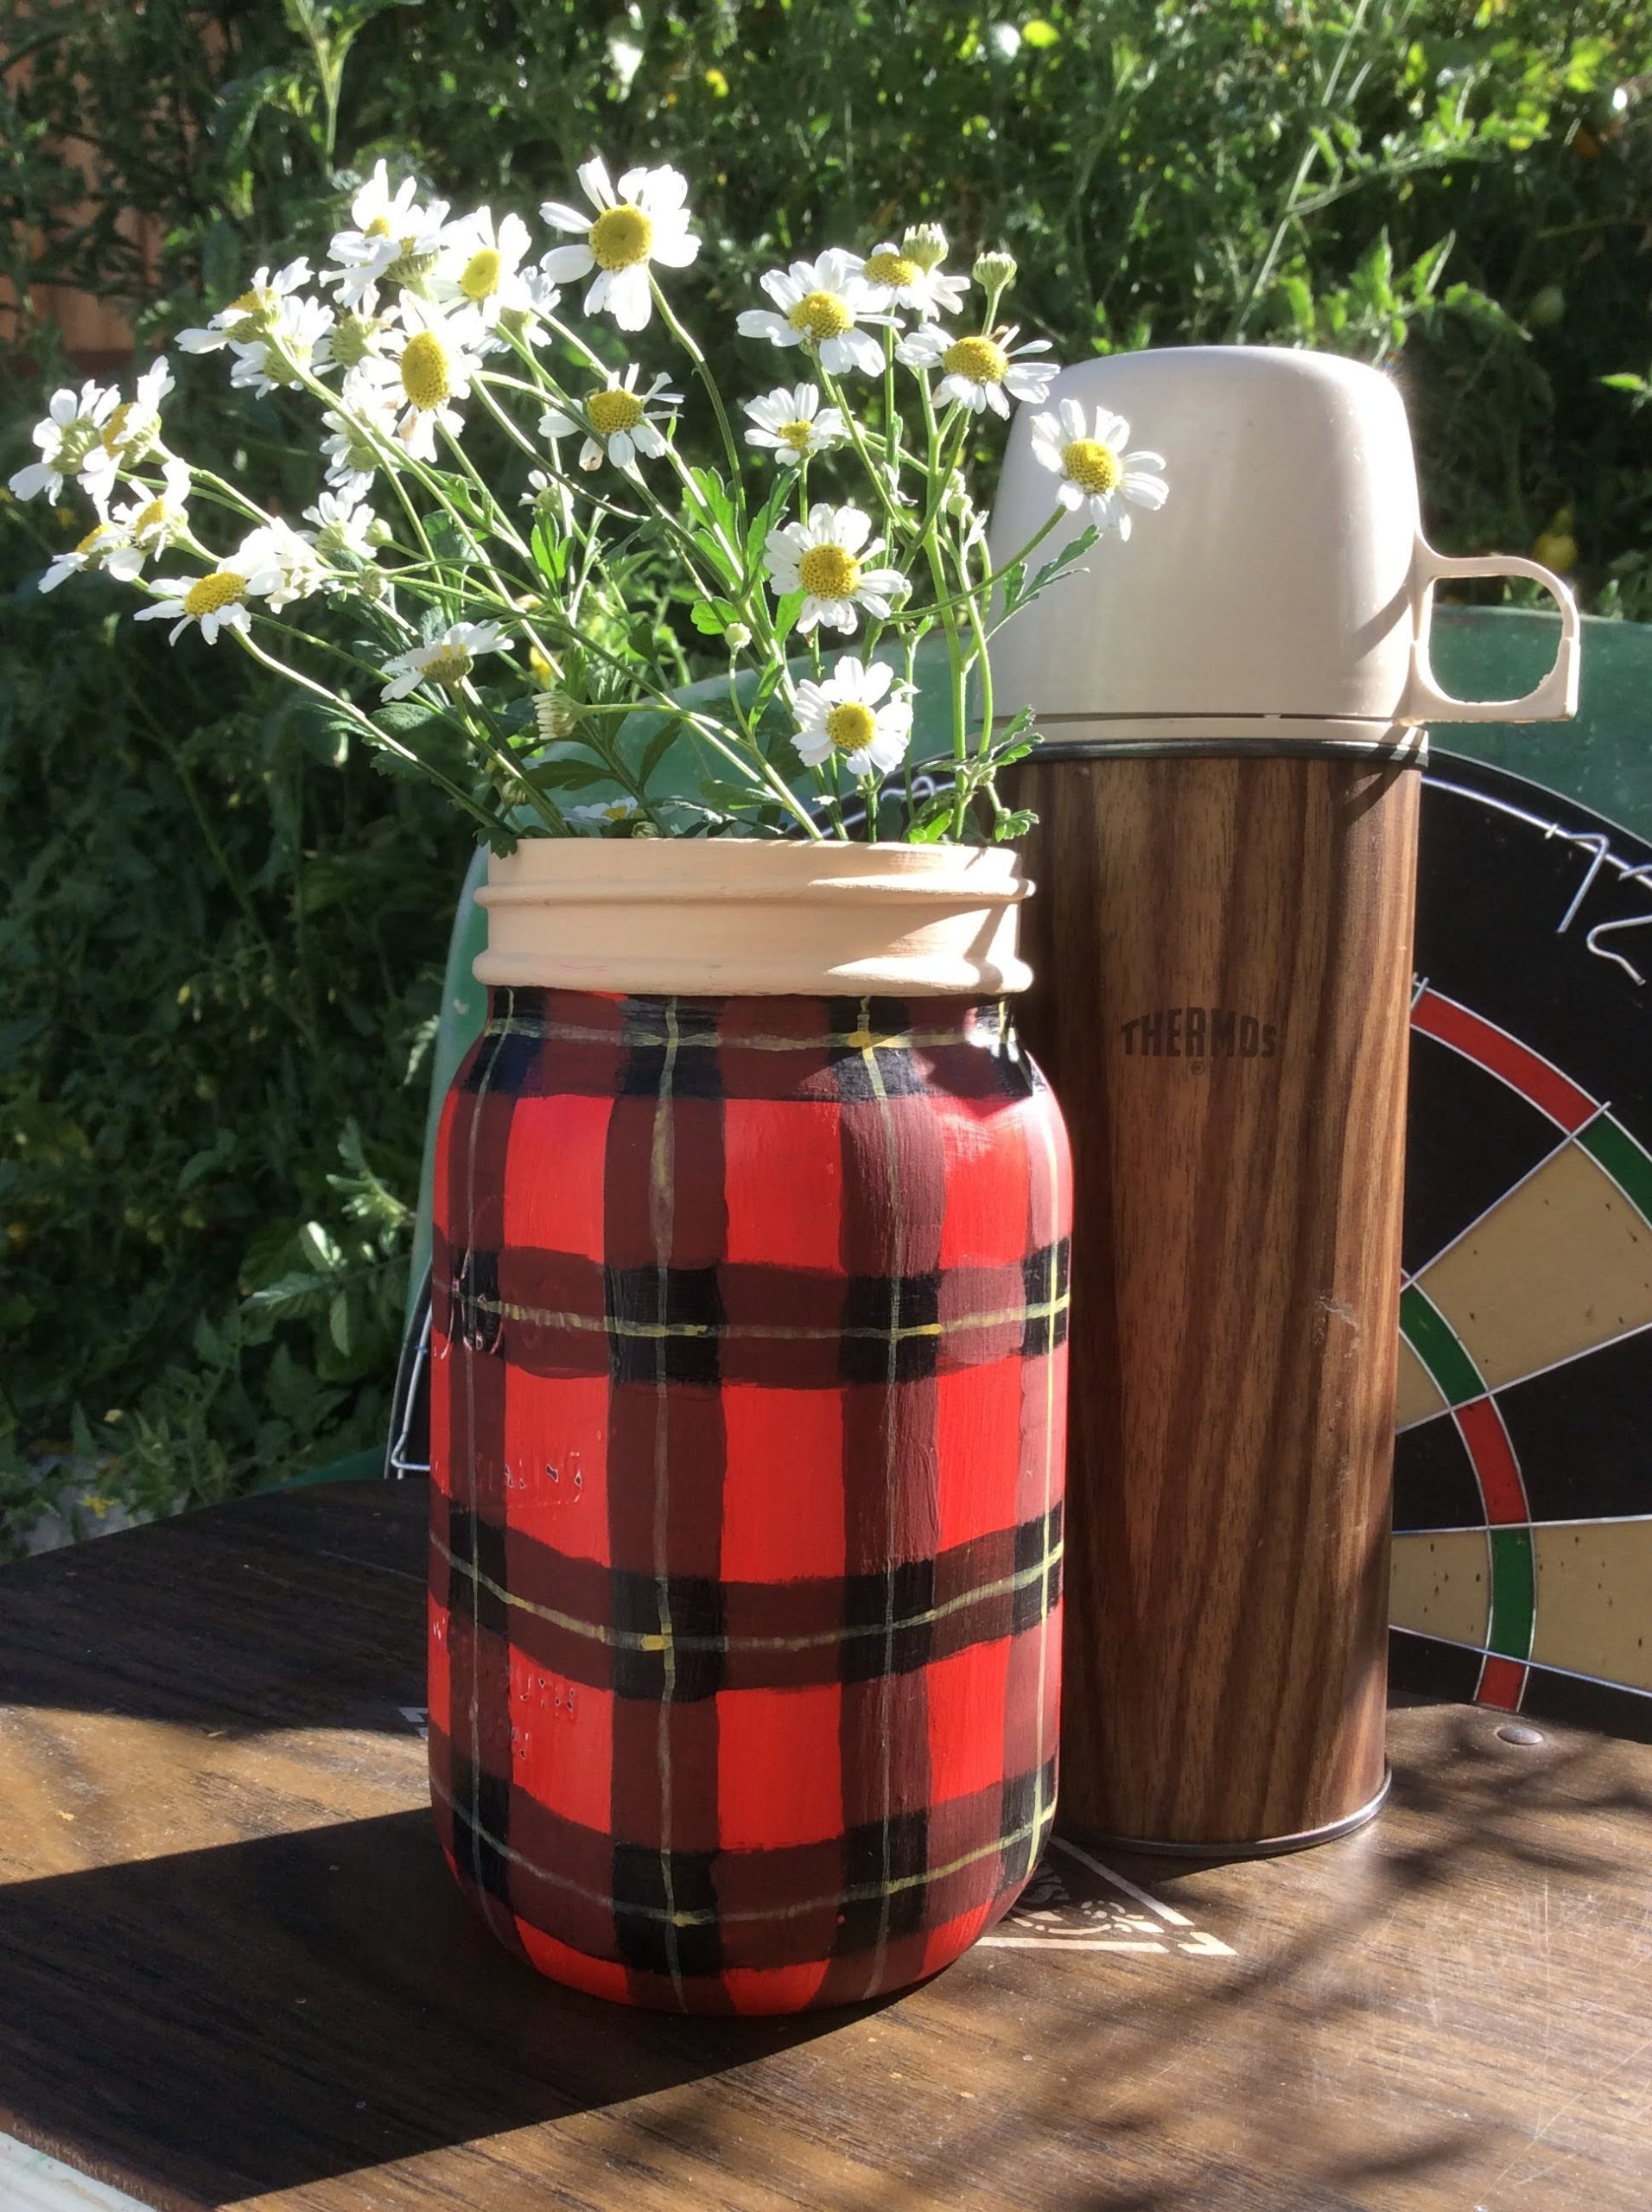 Buffalo Checked mason jar vase thermos by Fresh Vintage by Lisa S, featured on DIY Salvaged Junk Projects 541 on Funky Junk!